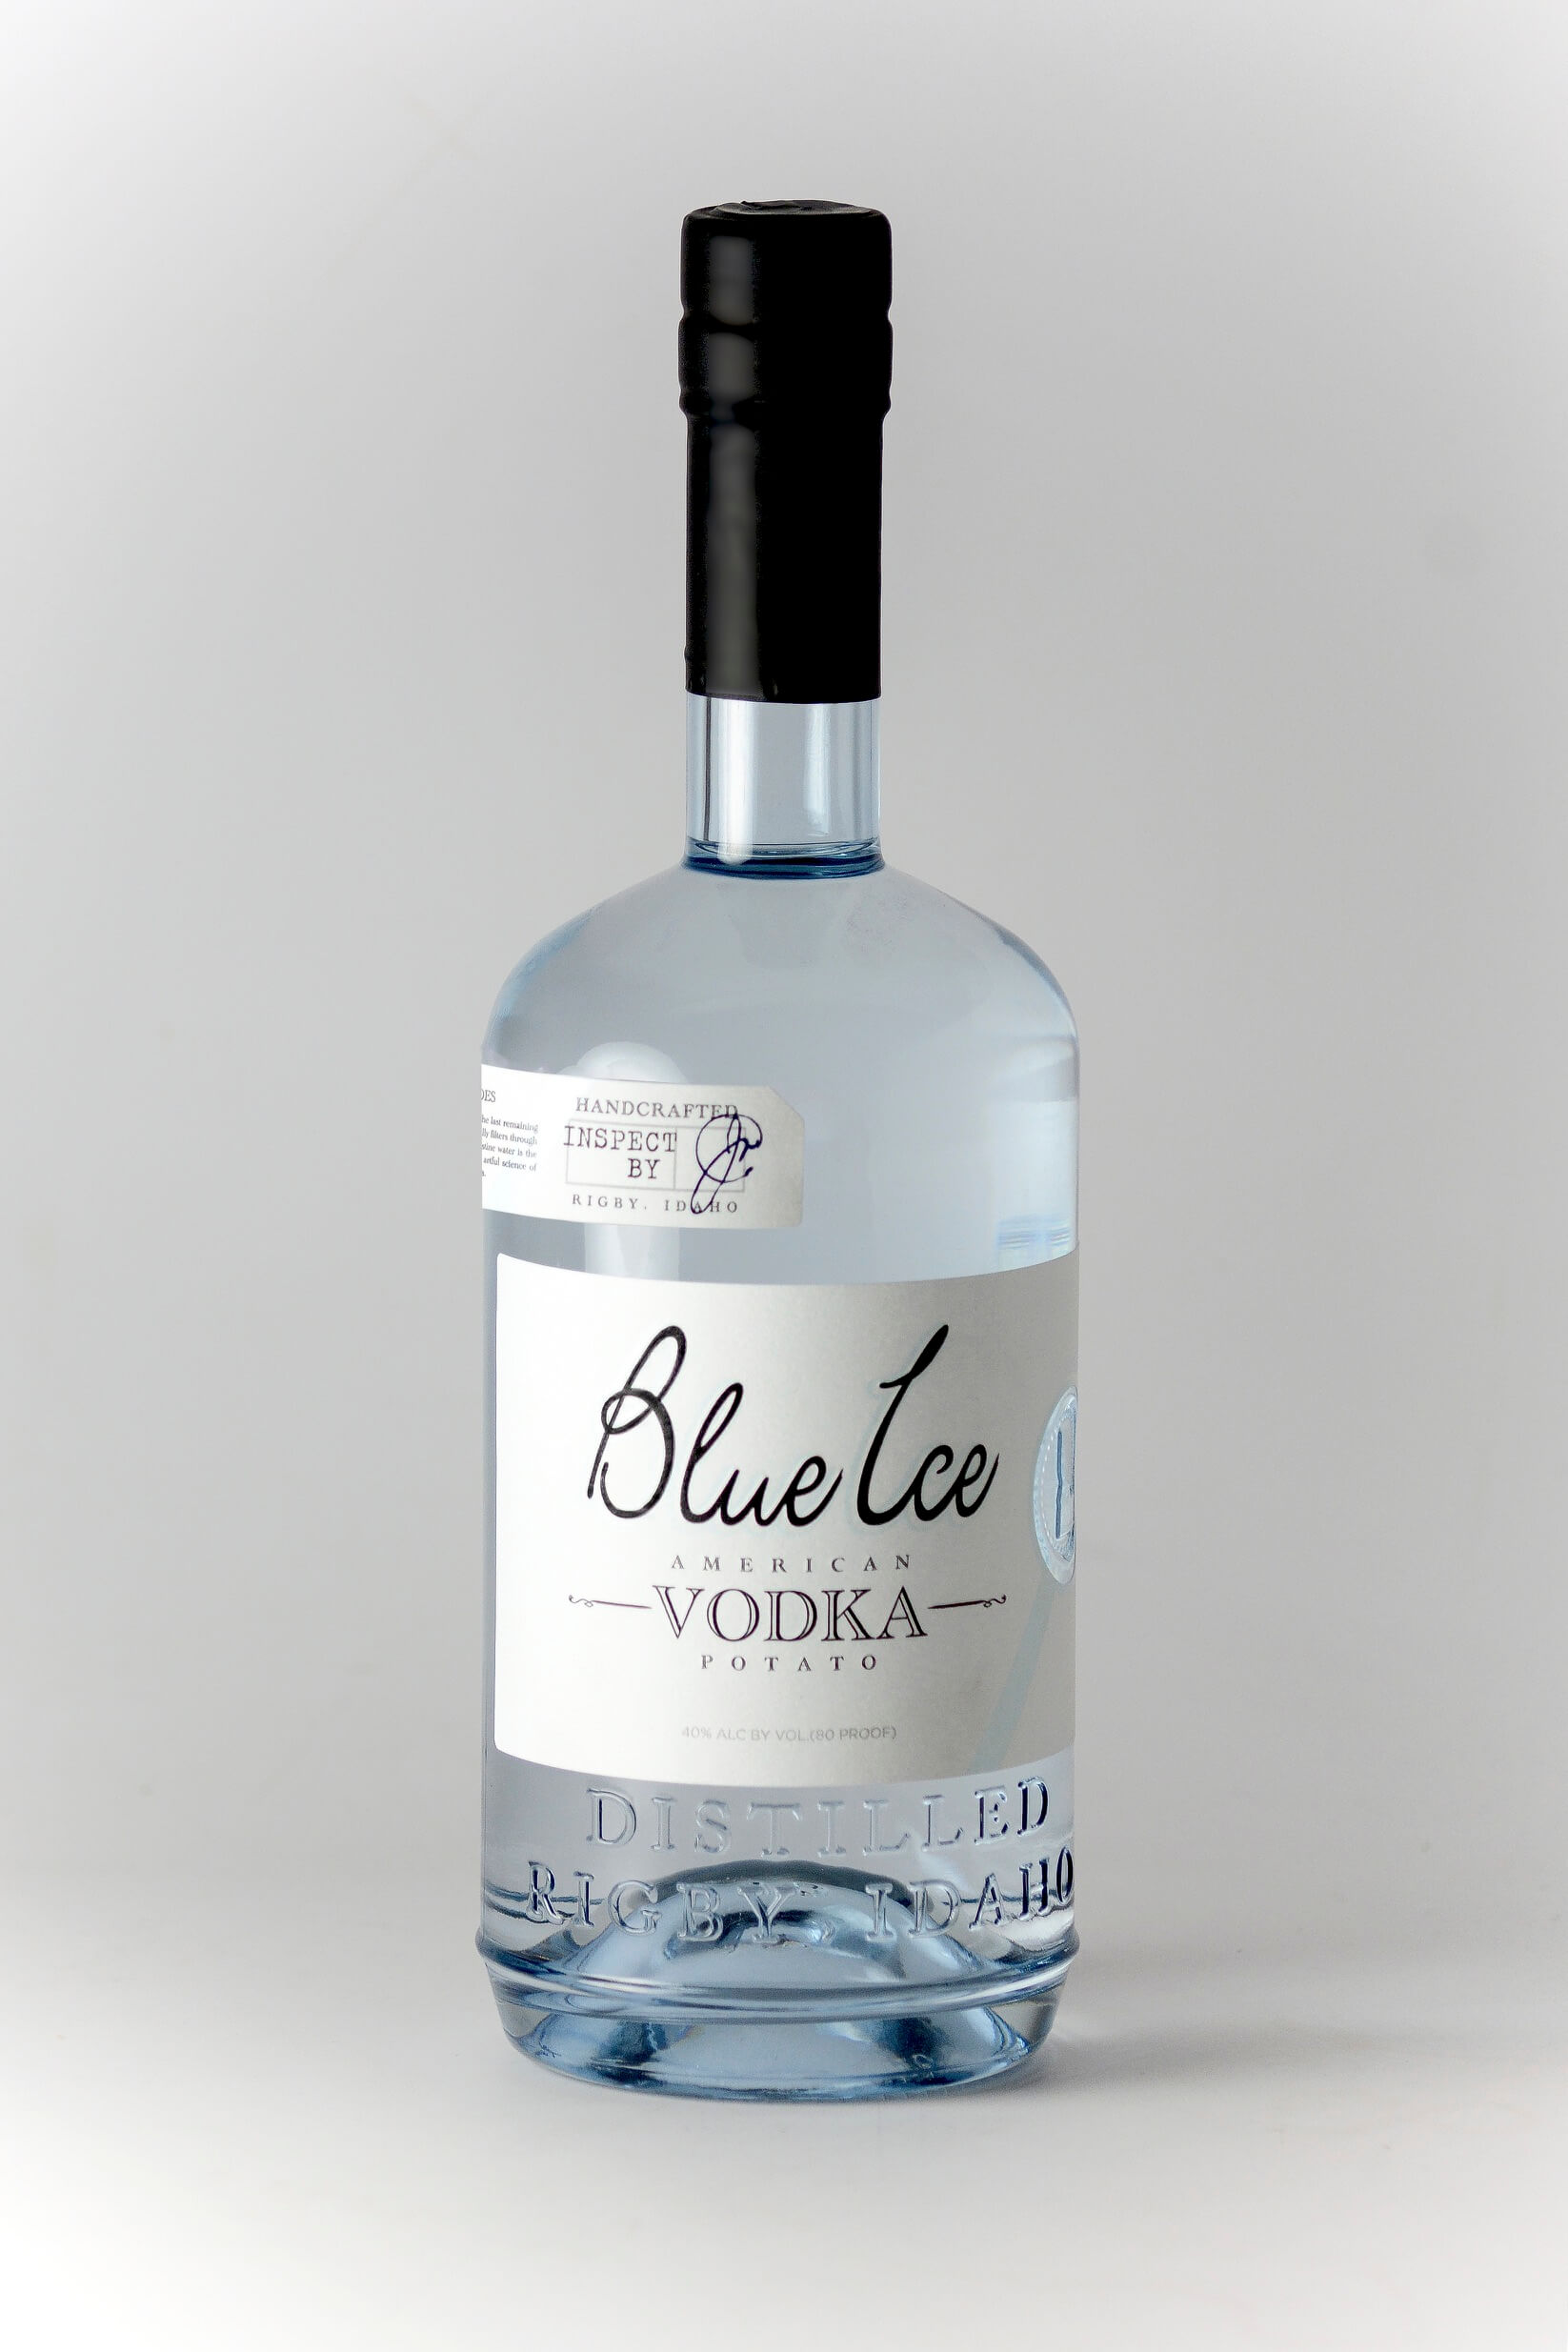 Blue Ice Vodka pre-Prohibition Era bottle redesign - What's Shakin' week of June 5